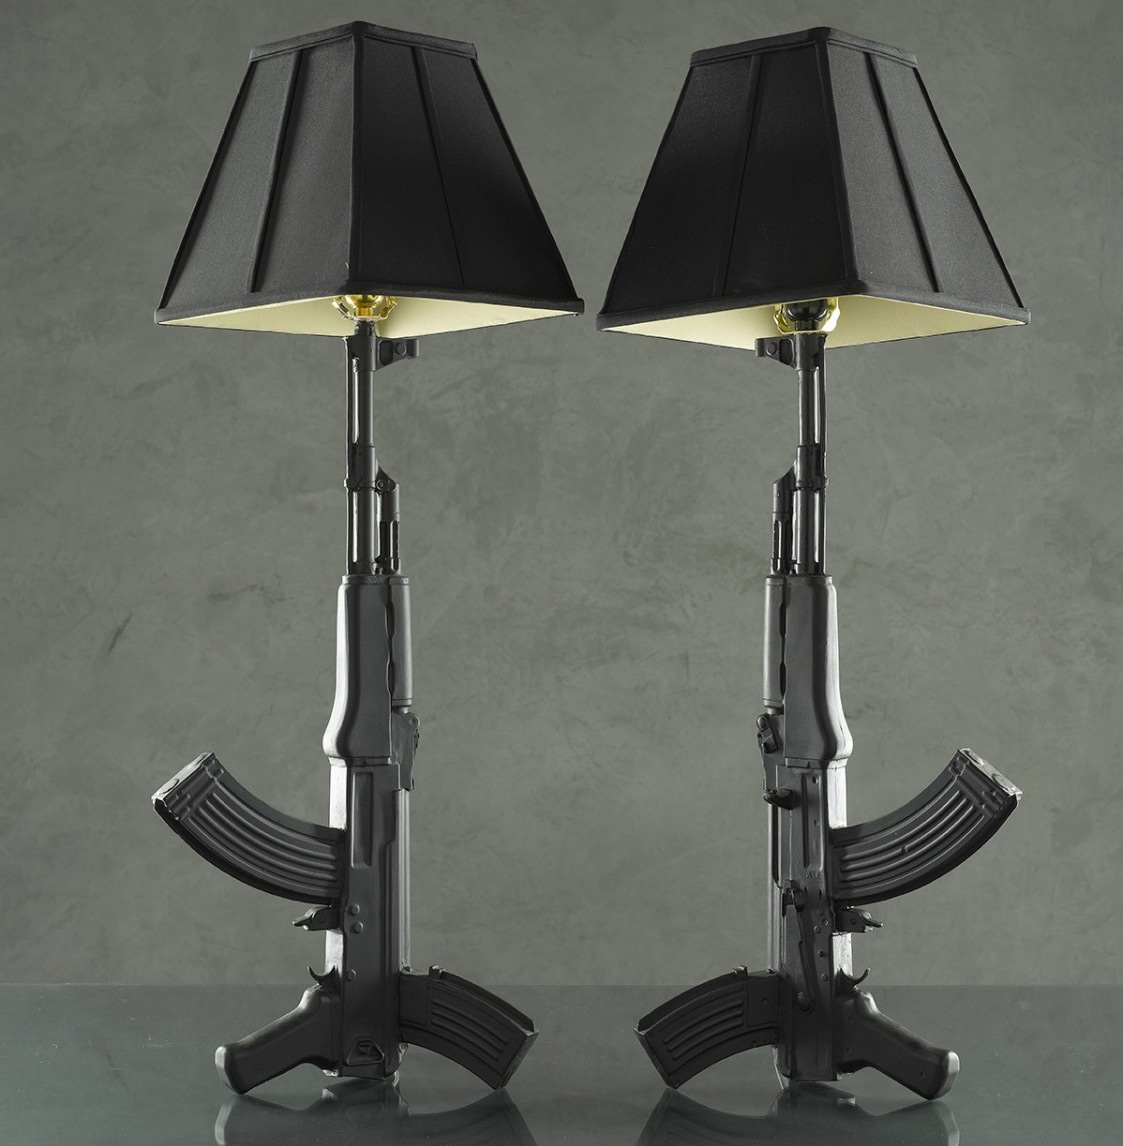 Incredible AK-47 Lamp 1123 x 1146 · 200 kB · jpeg